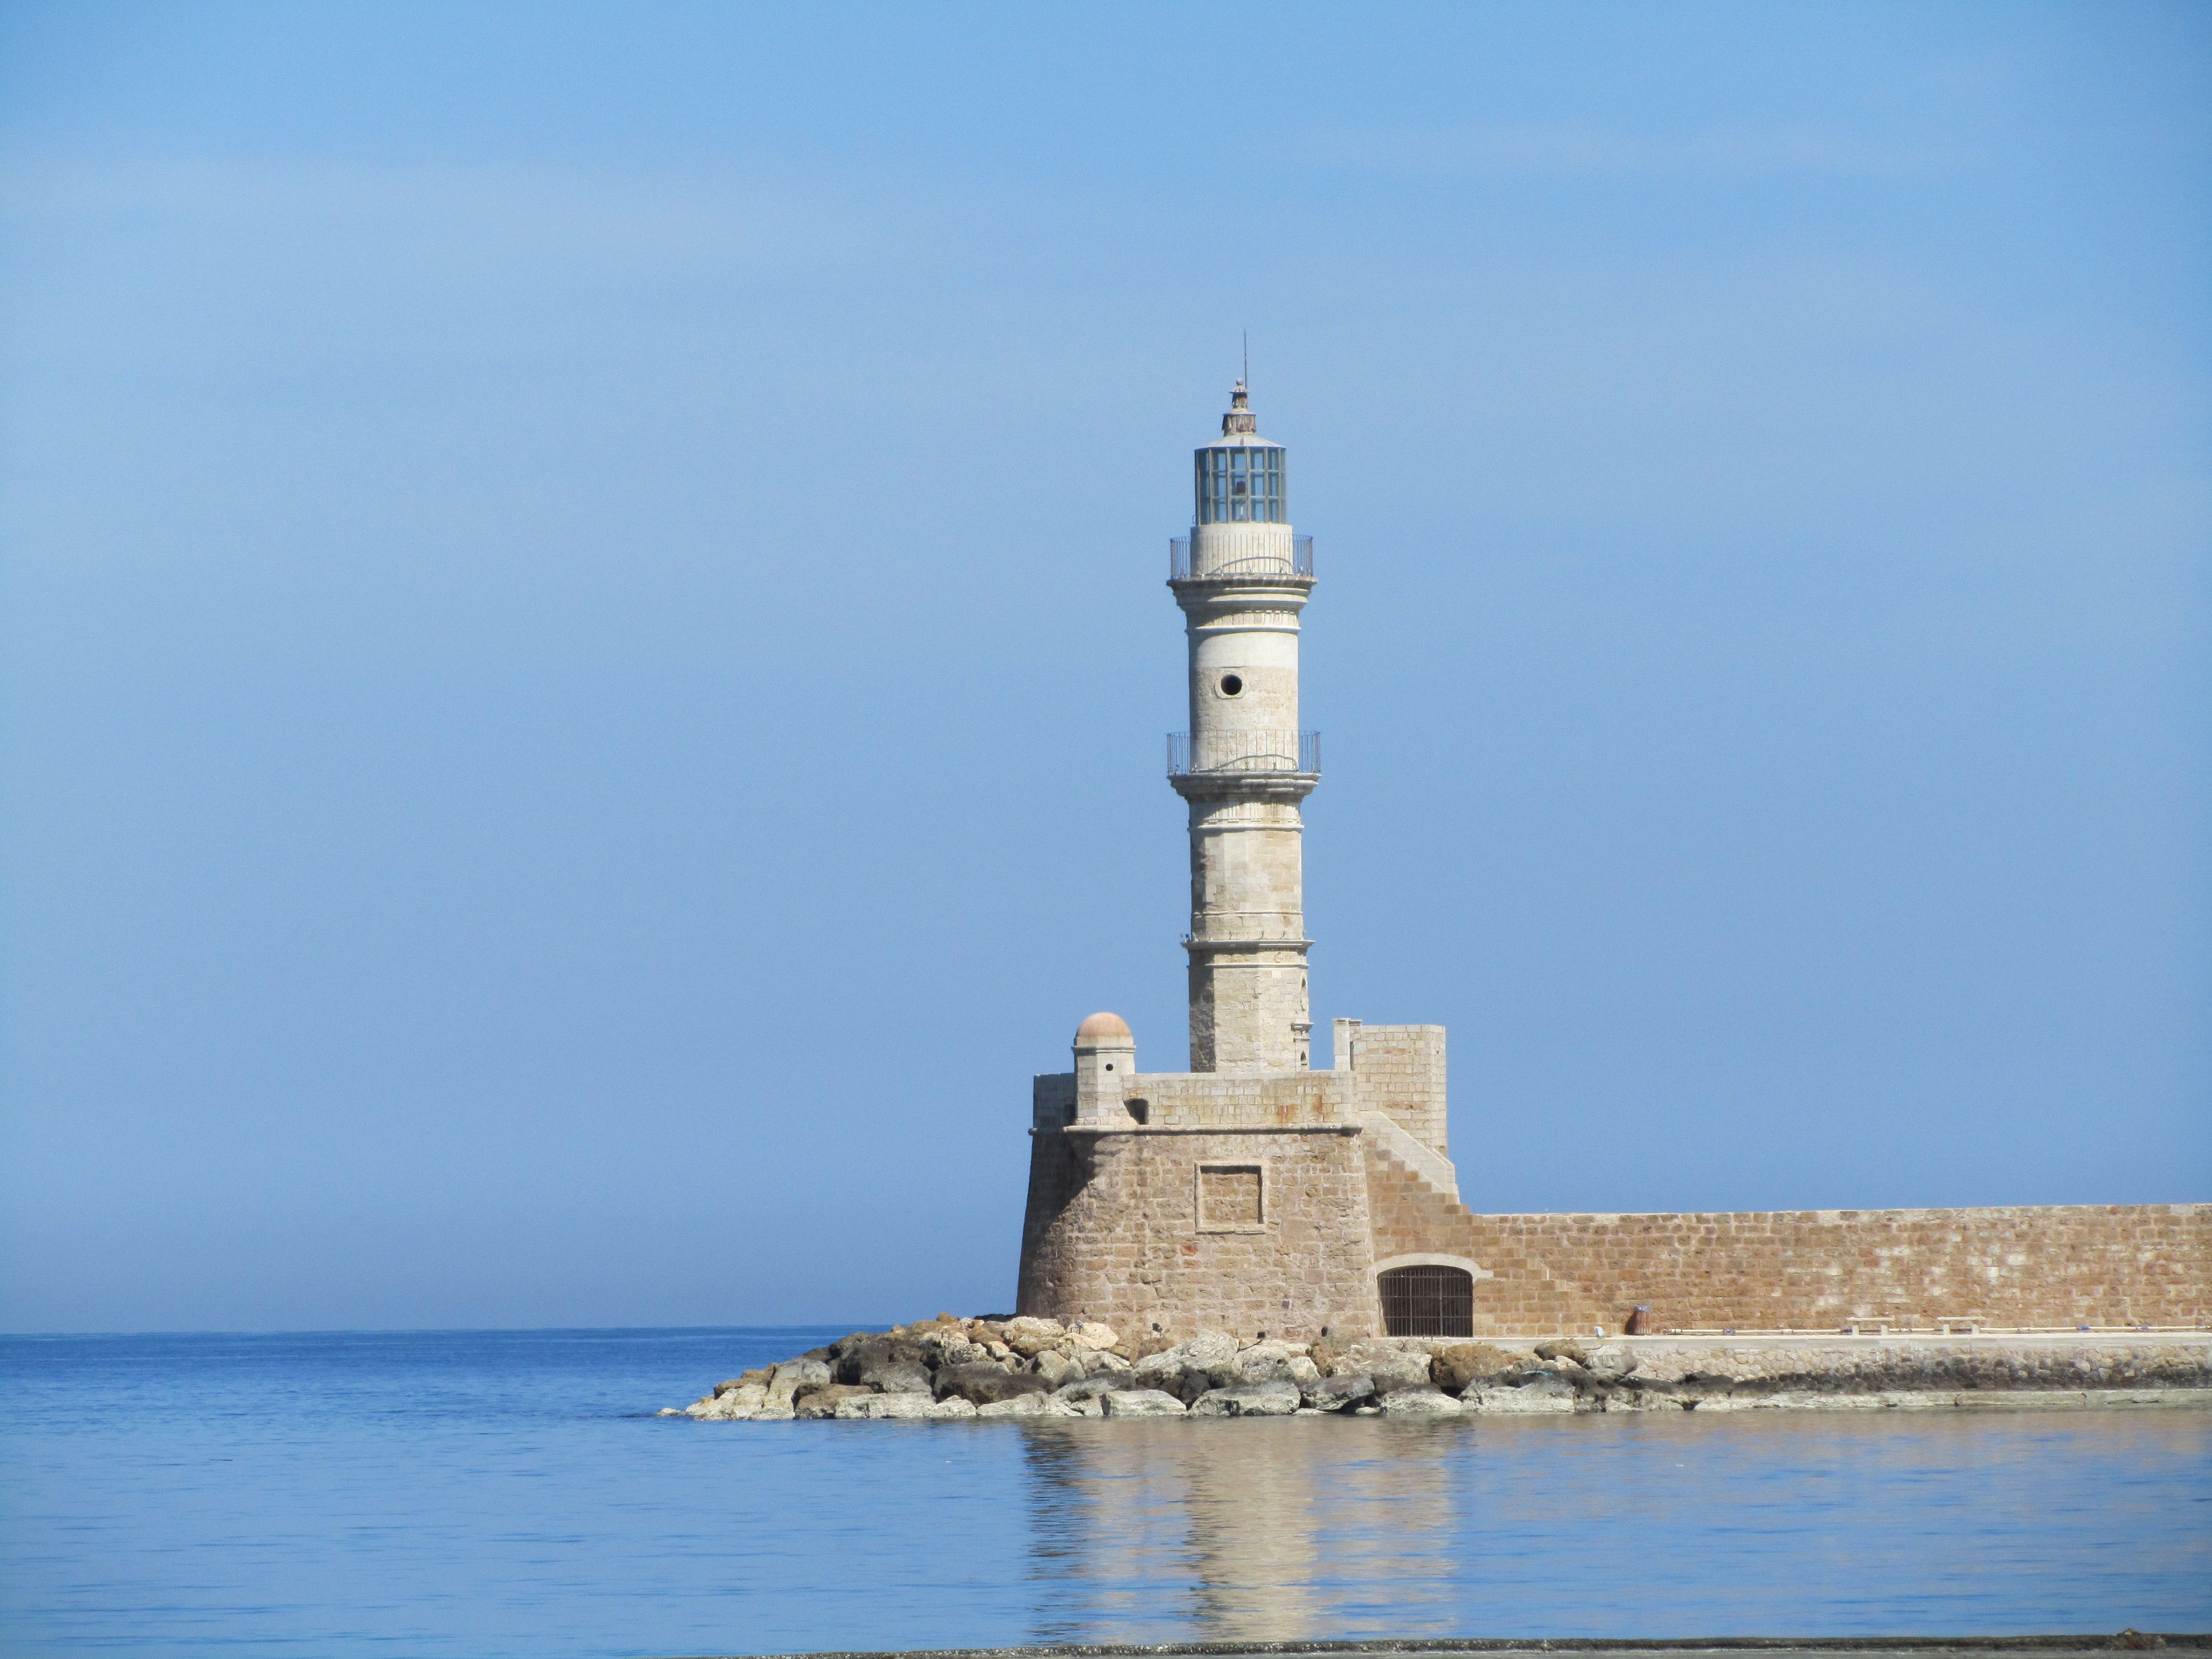 Lighthouse at the port of Chania #Crete island #Greece